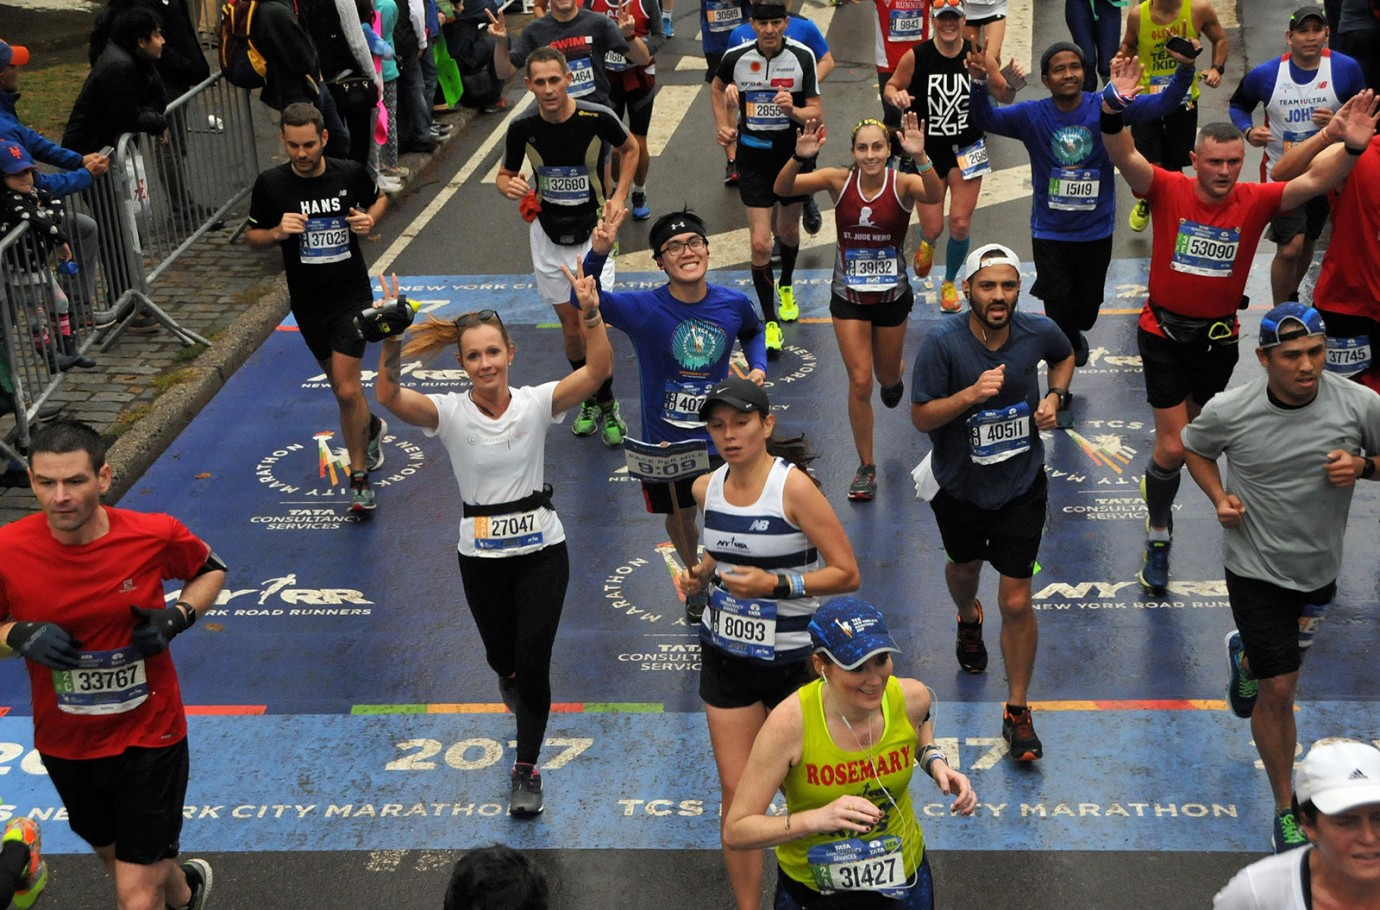 NYC Marathon tips and tricks